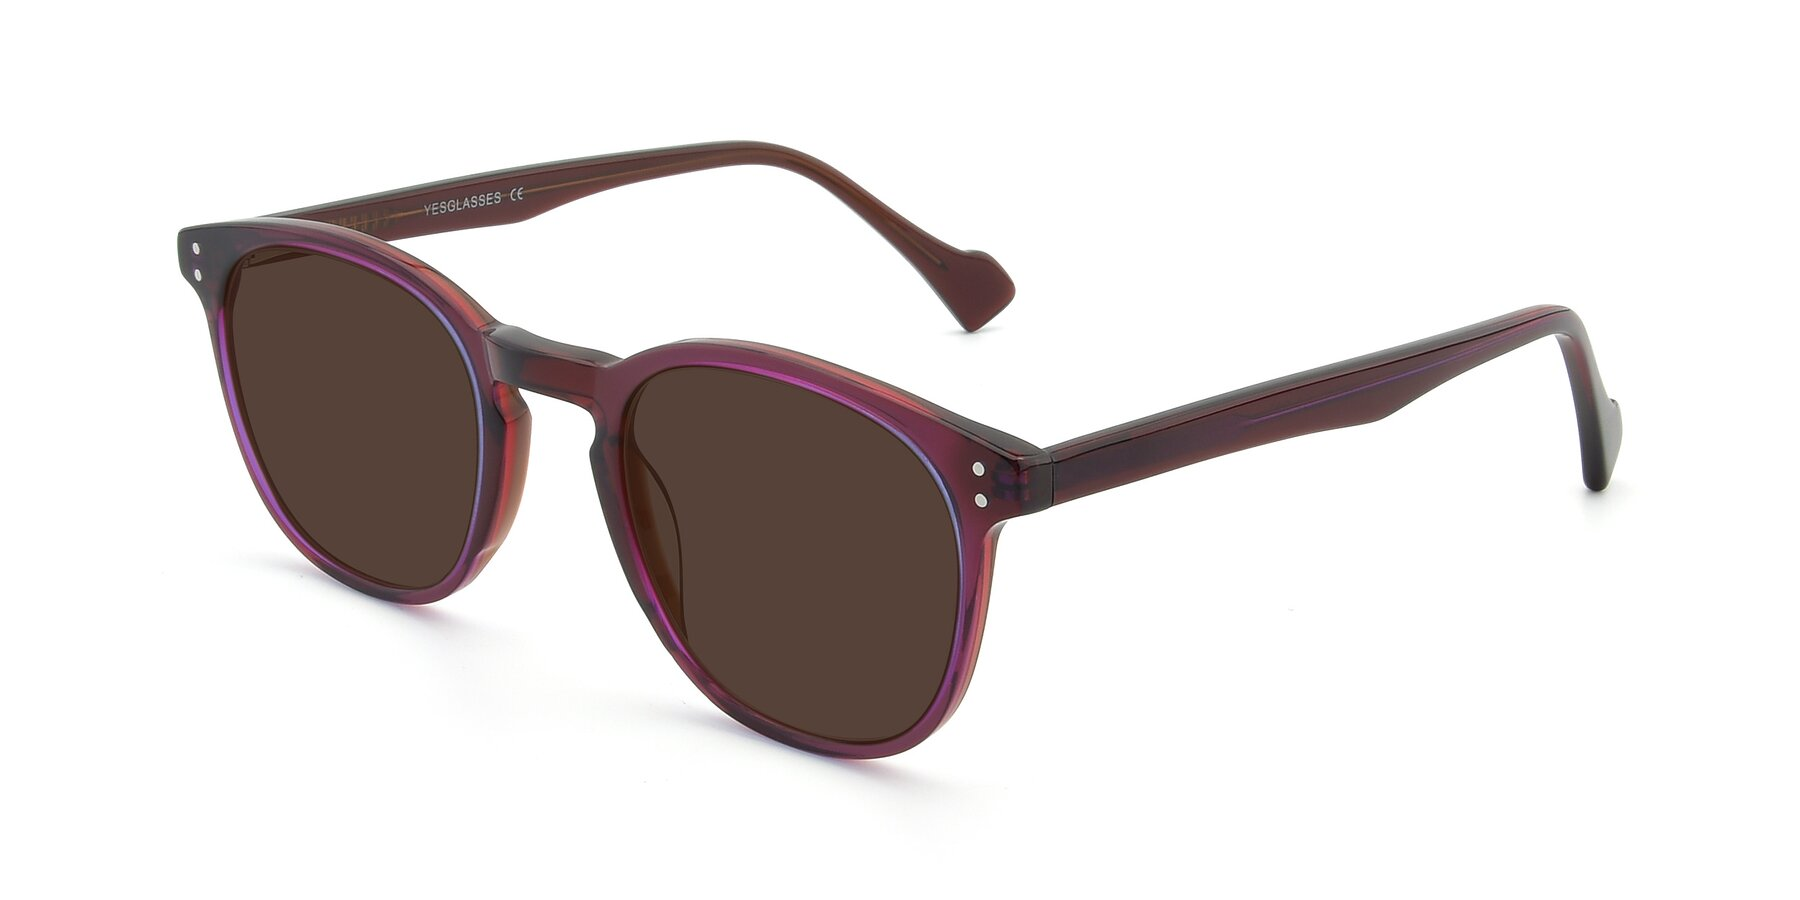 Angle of 17293 in Violet with Brown Tinted Lenses